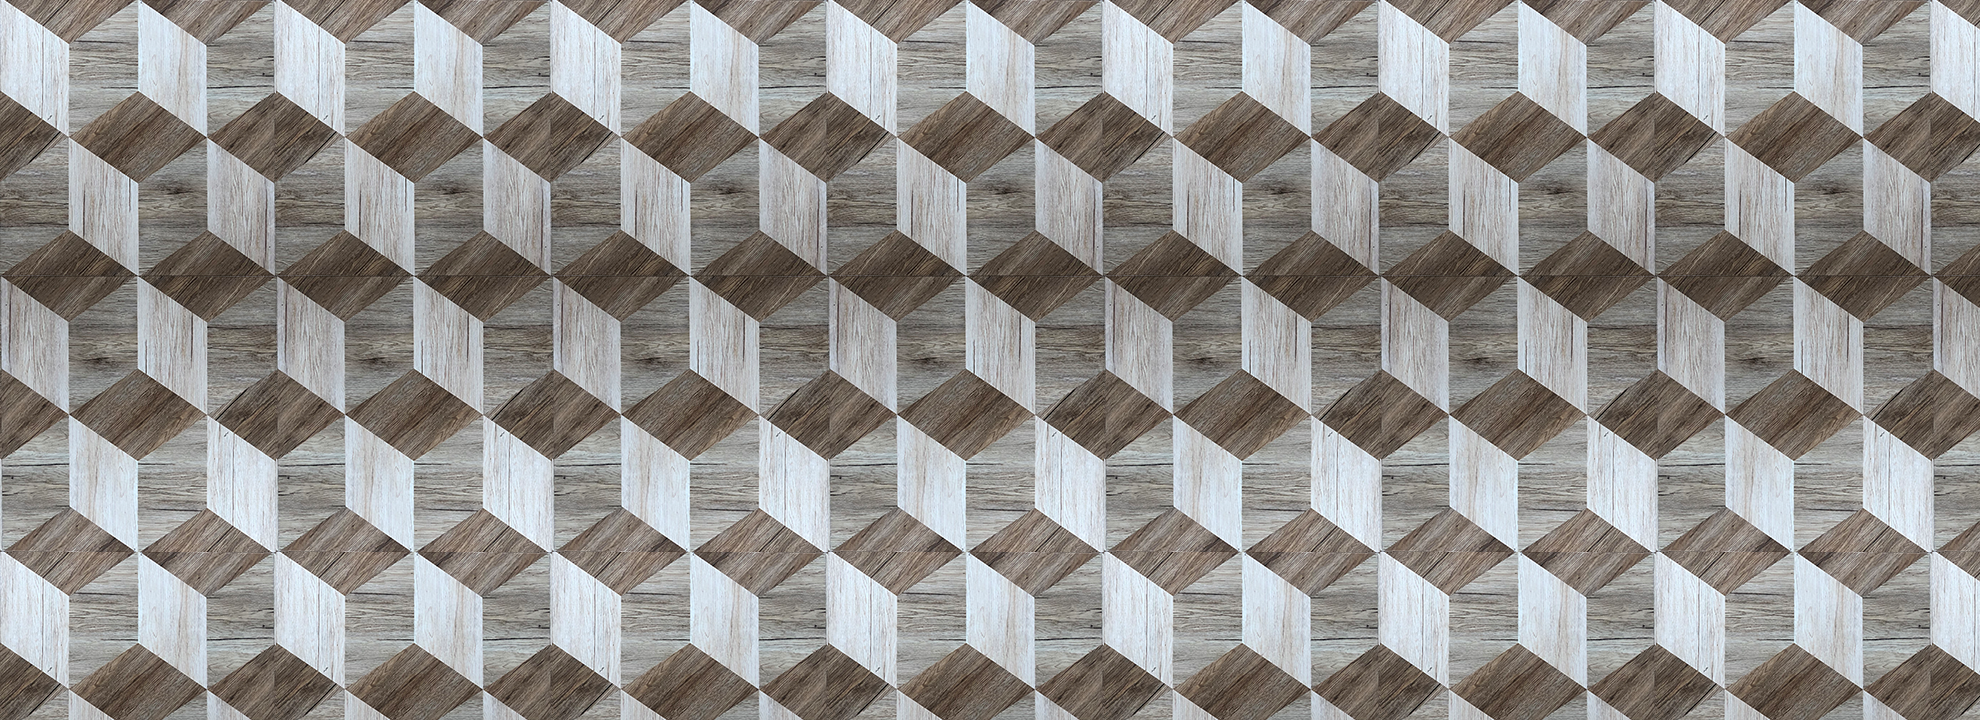 Divider Tiles – Sequence 2